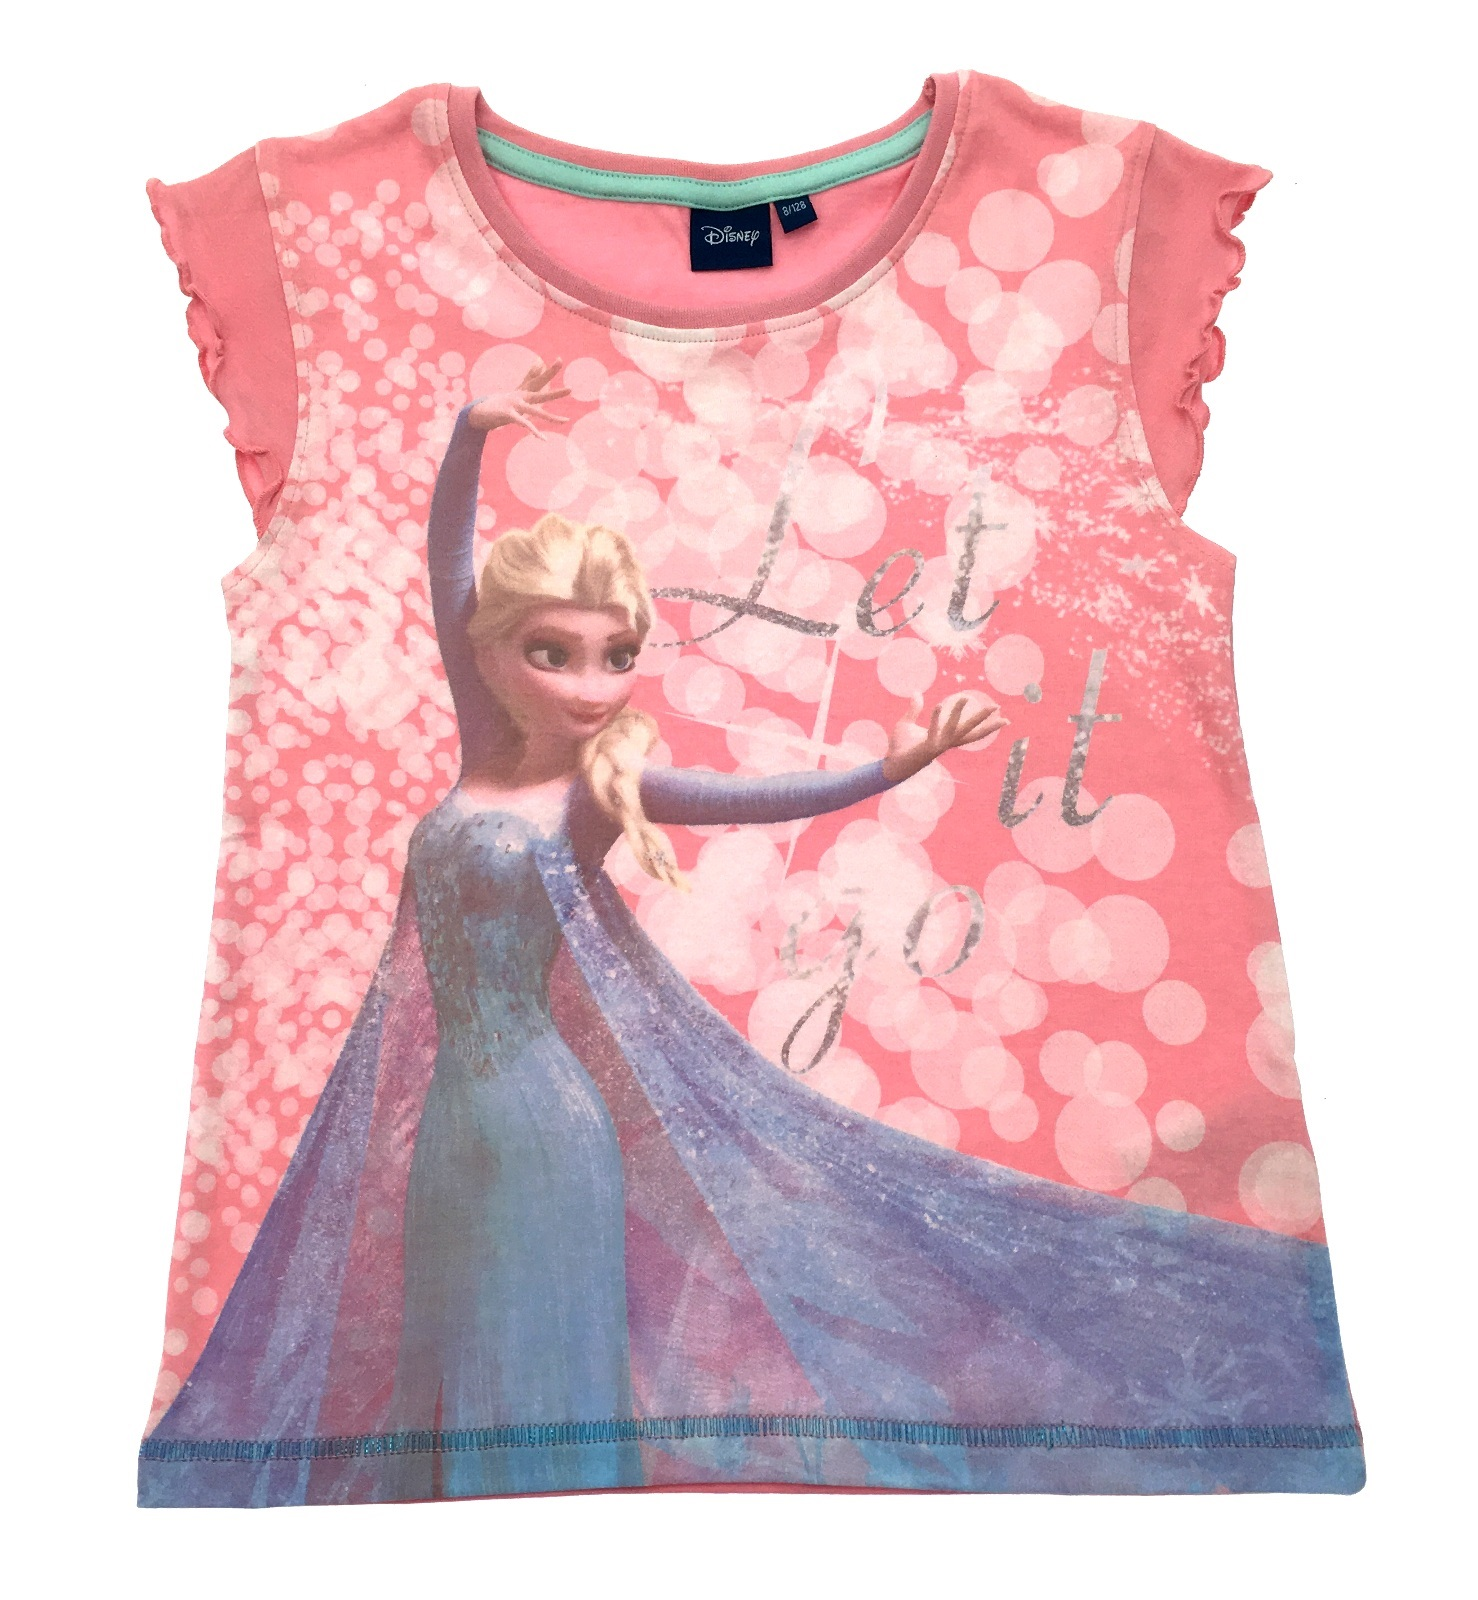 Girls' Clothing On trend, for sure with Disney girls' clothes including fitness-ready t-shirts, sparkling shoes and socks, cozy pajamas, rainwear, dresses, skirts and more. Anna Costume Collection for Kids - Frozen. $ - $ $ - $ Rapunzel Costume for Kids - Tangled.